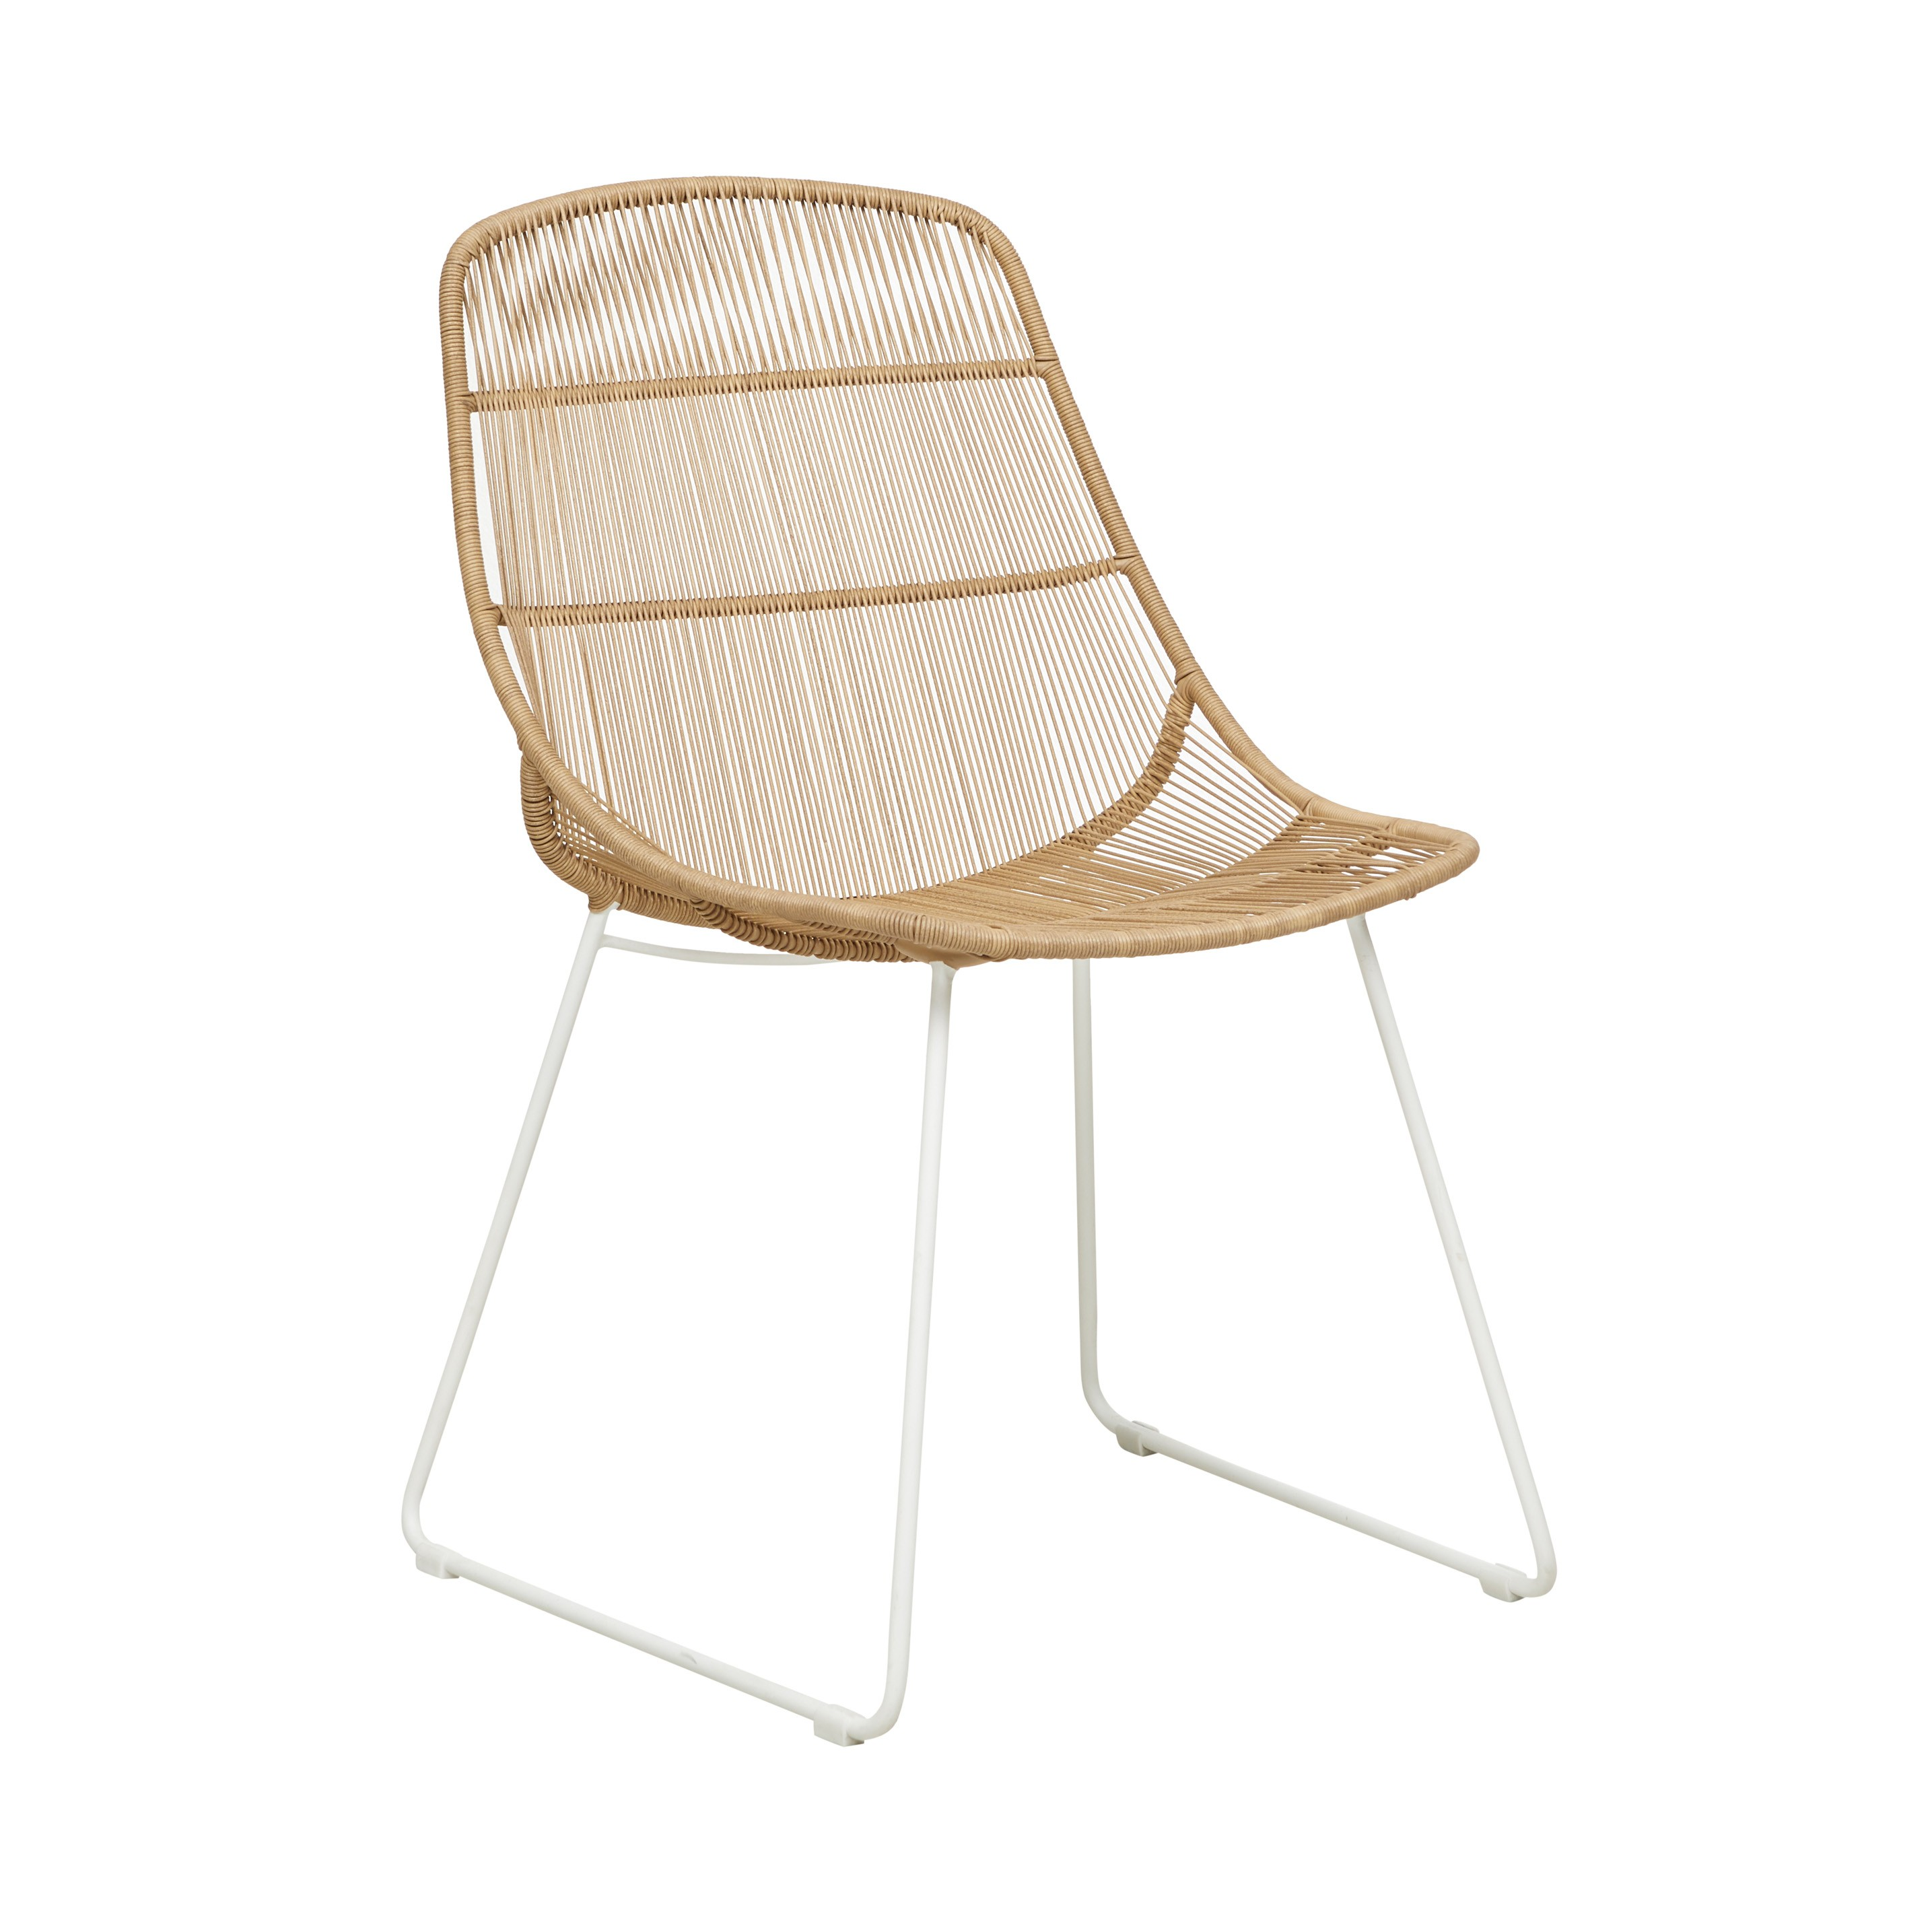 Furniture Hero-Images Dining-Chairs-Benches-and-Stools granada-scoop-02